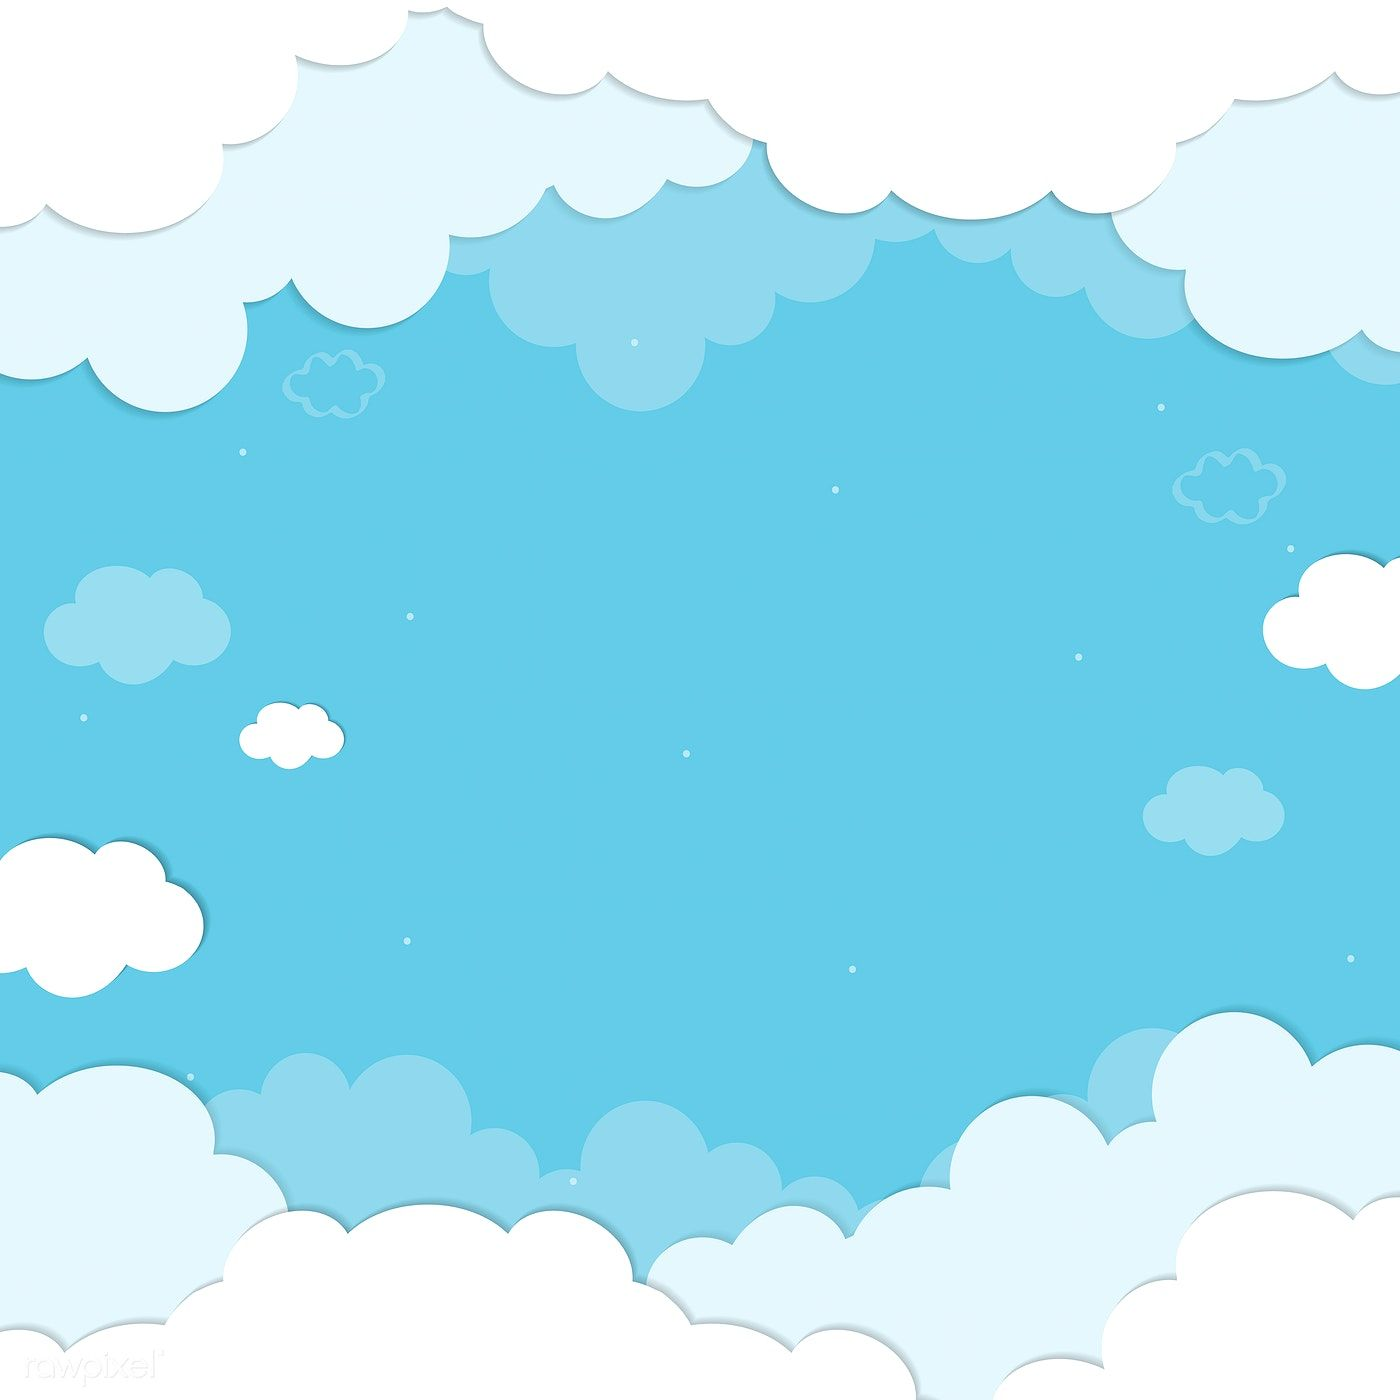 Blue Sky With Clouds Patterned Background Vector Free Image By Rawpixel Com Chayanit Background Patterns Vector Background Pattern Clouds Pattern